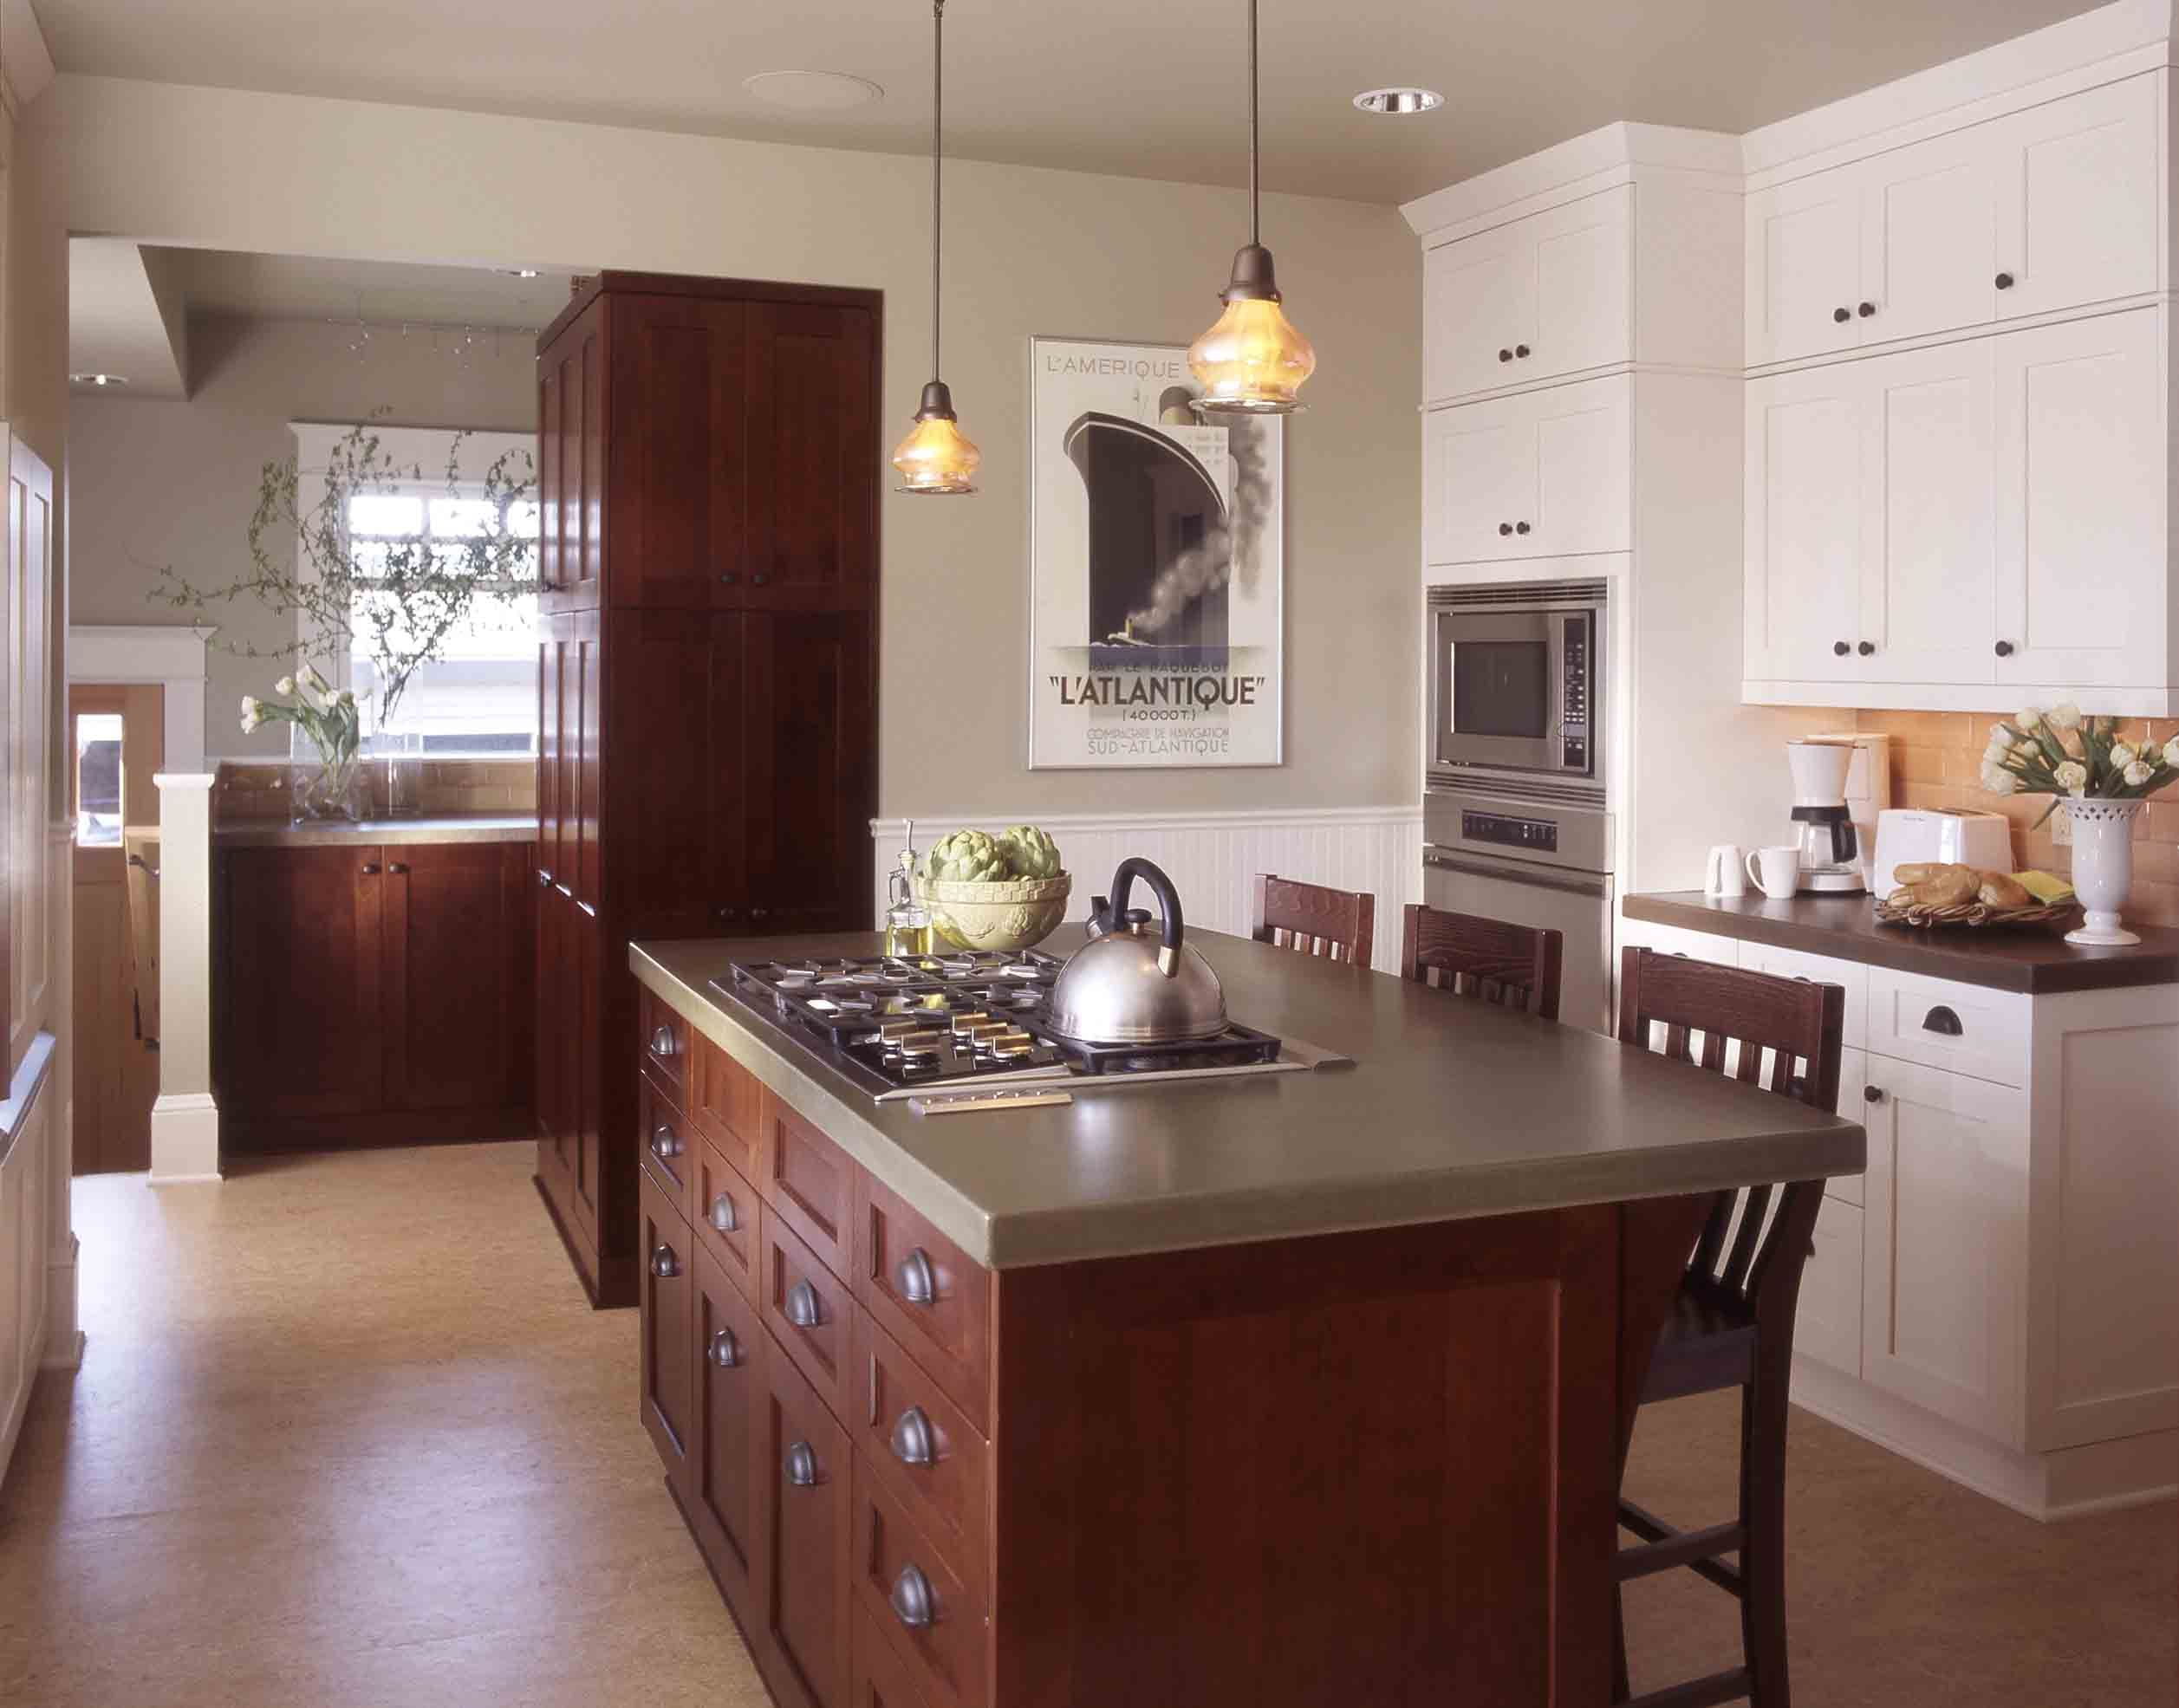 Bathroom Furniture Kitchen Remodeling Portland craftsman kitchen portland or and architecturally accurate features sustainability were priorities to our clients in se we home remo